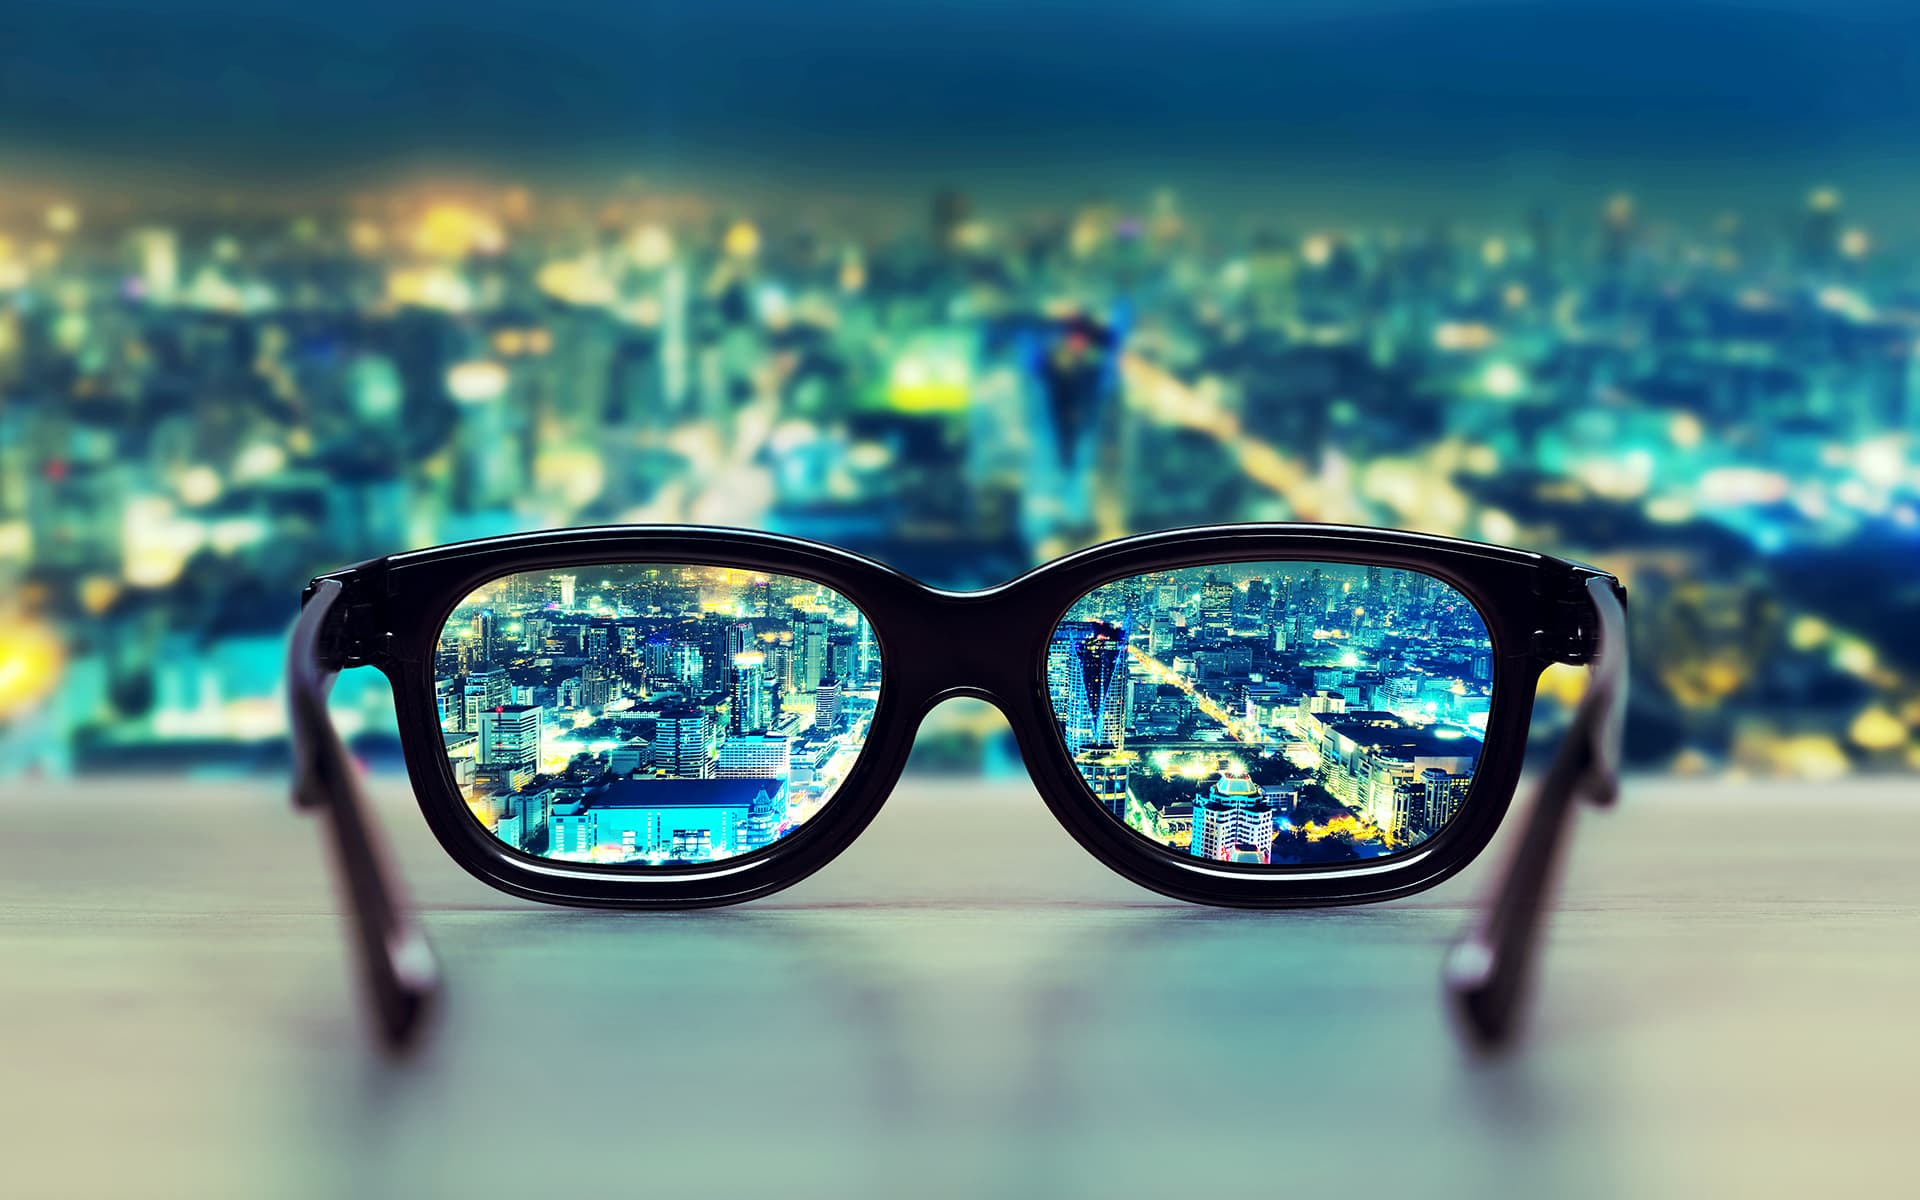 Signavio alternative to Visio - glasses on a table makes the view clear